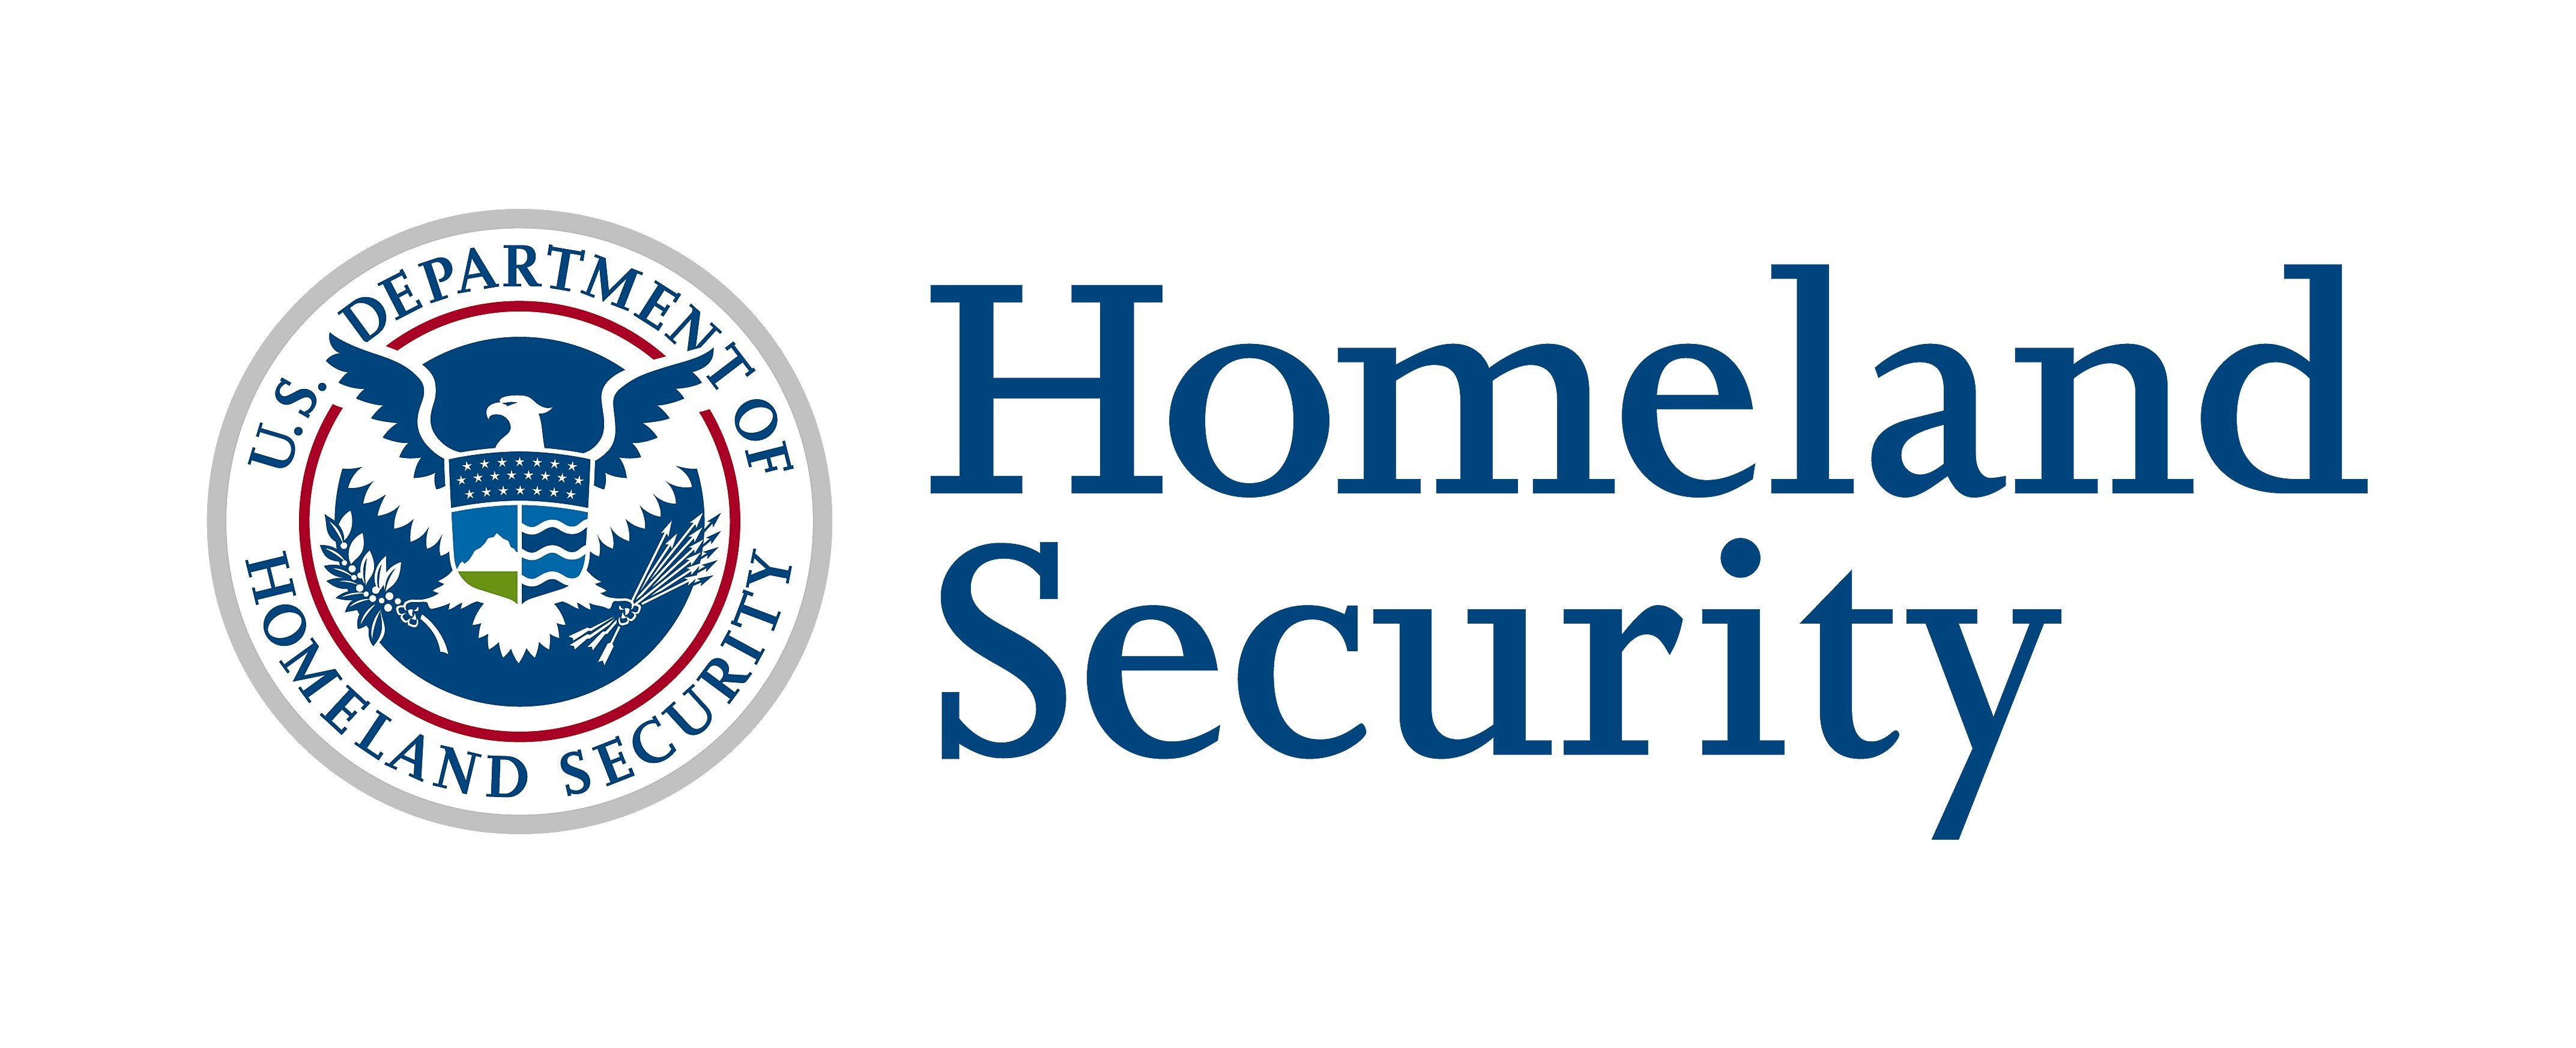 DHS $6 billion firewall not so effective against hackersSecurity